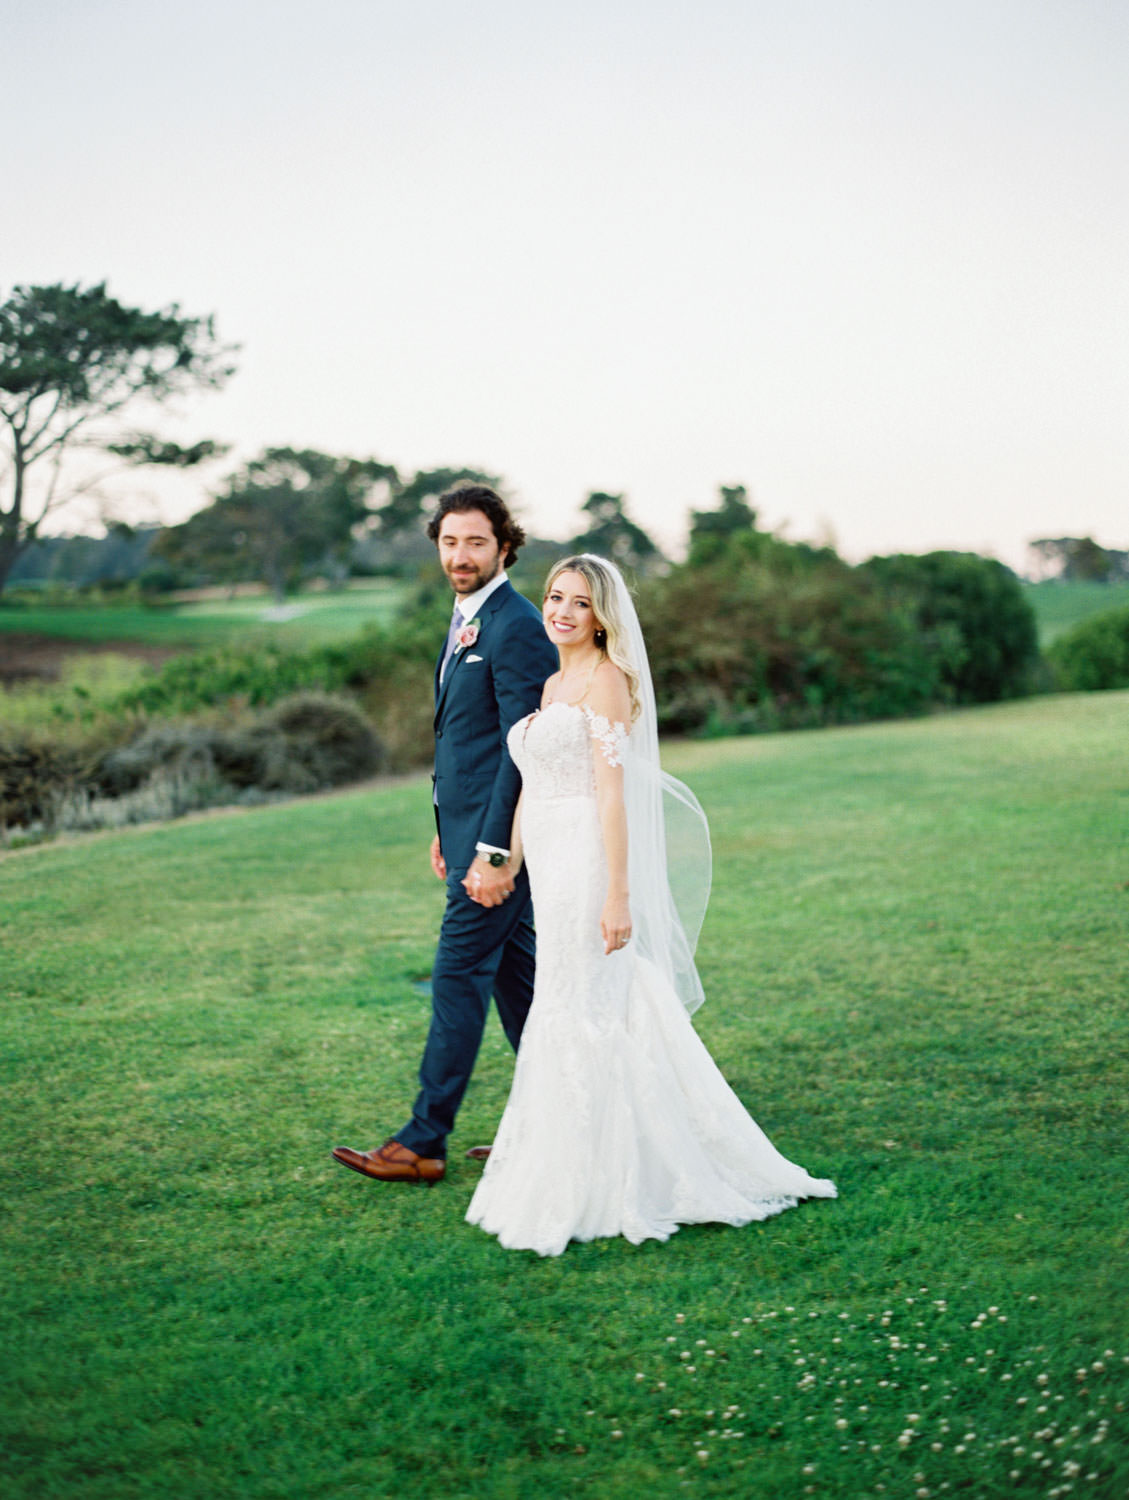 Bride in Pronovias off shoulder lace gown and long train and veil walking on grassy hill with groom in navy suit and rose boutonniere, Lodge at Torrey Pines wedding, film photography by Cavin Elizabeth Photography